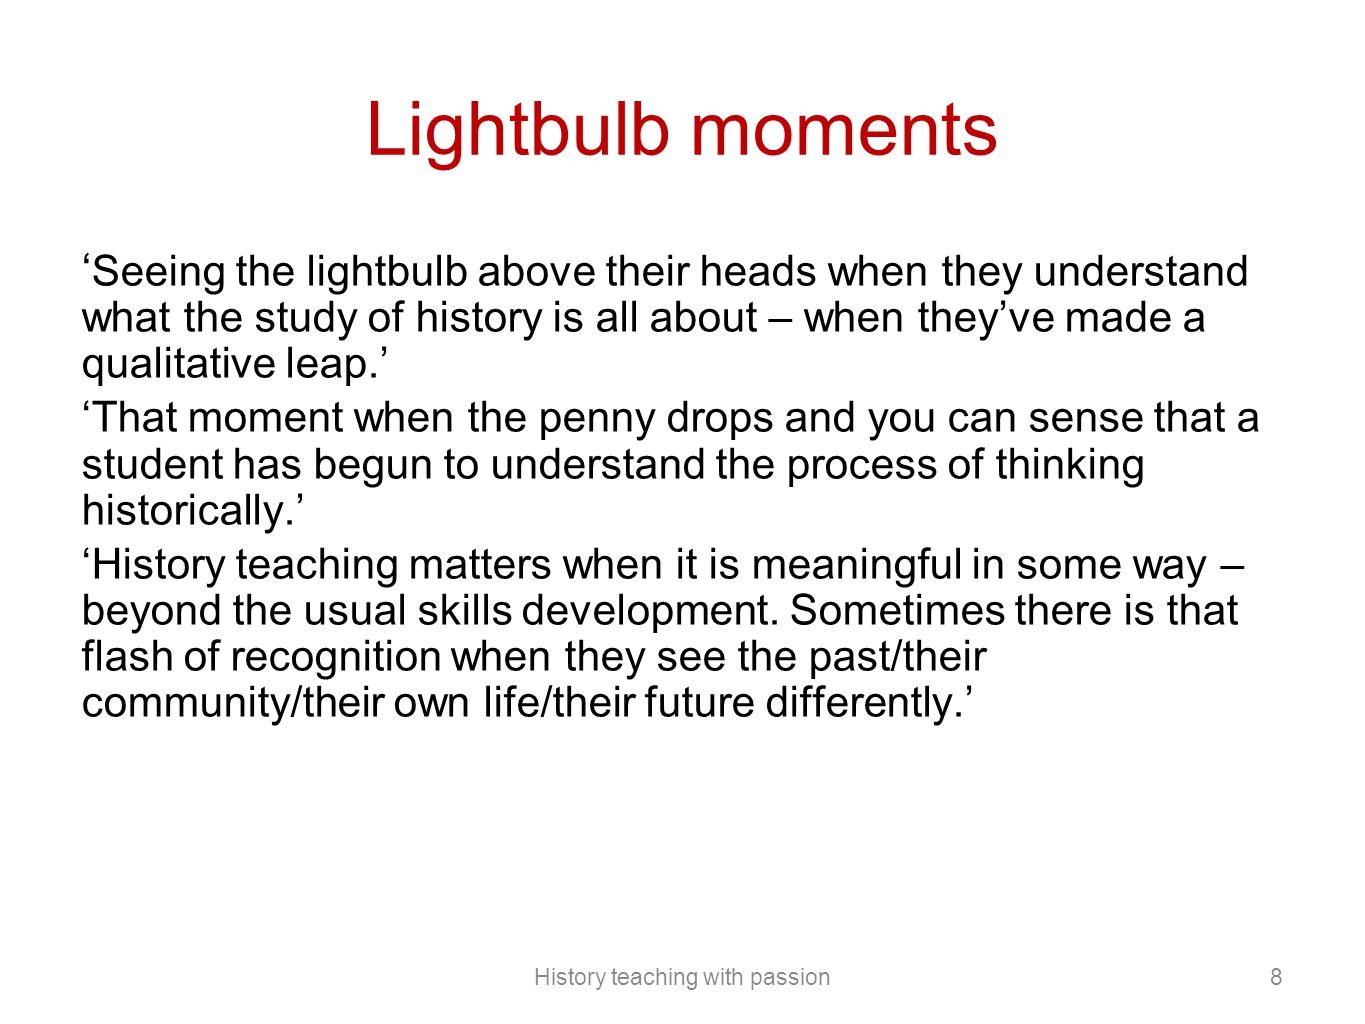 Lightbulb moments ' Seeing the lightbulb above their heads when they understand what the study of history is all about – when they've made a qualitative leap.' 'That moment when the penny drops and you can sense that a student has begun to understand the process of thinking historically.' 'History teaching matters when it is meaningful in some way – beyond the usual skills development.